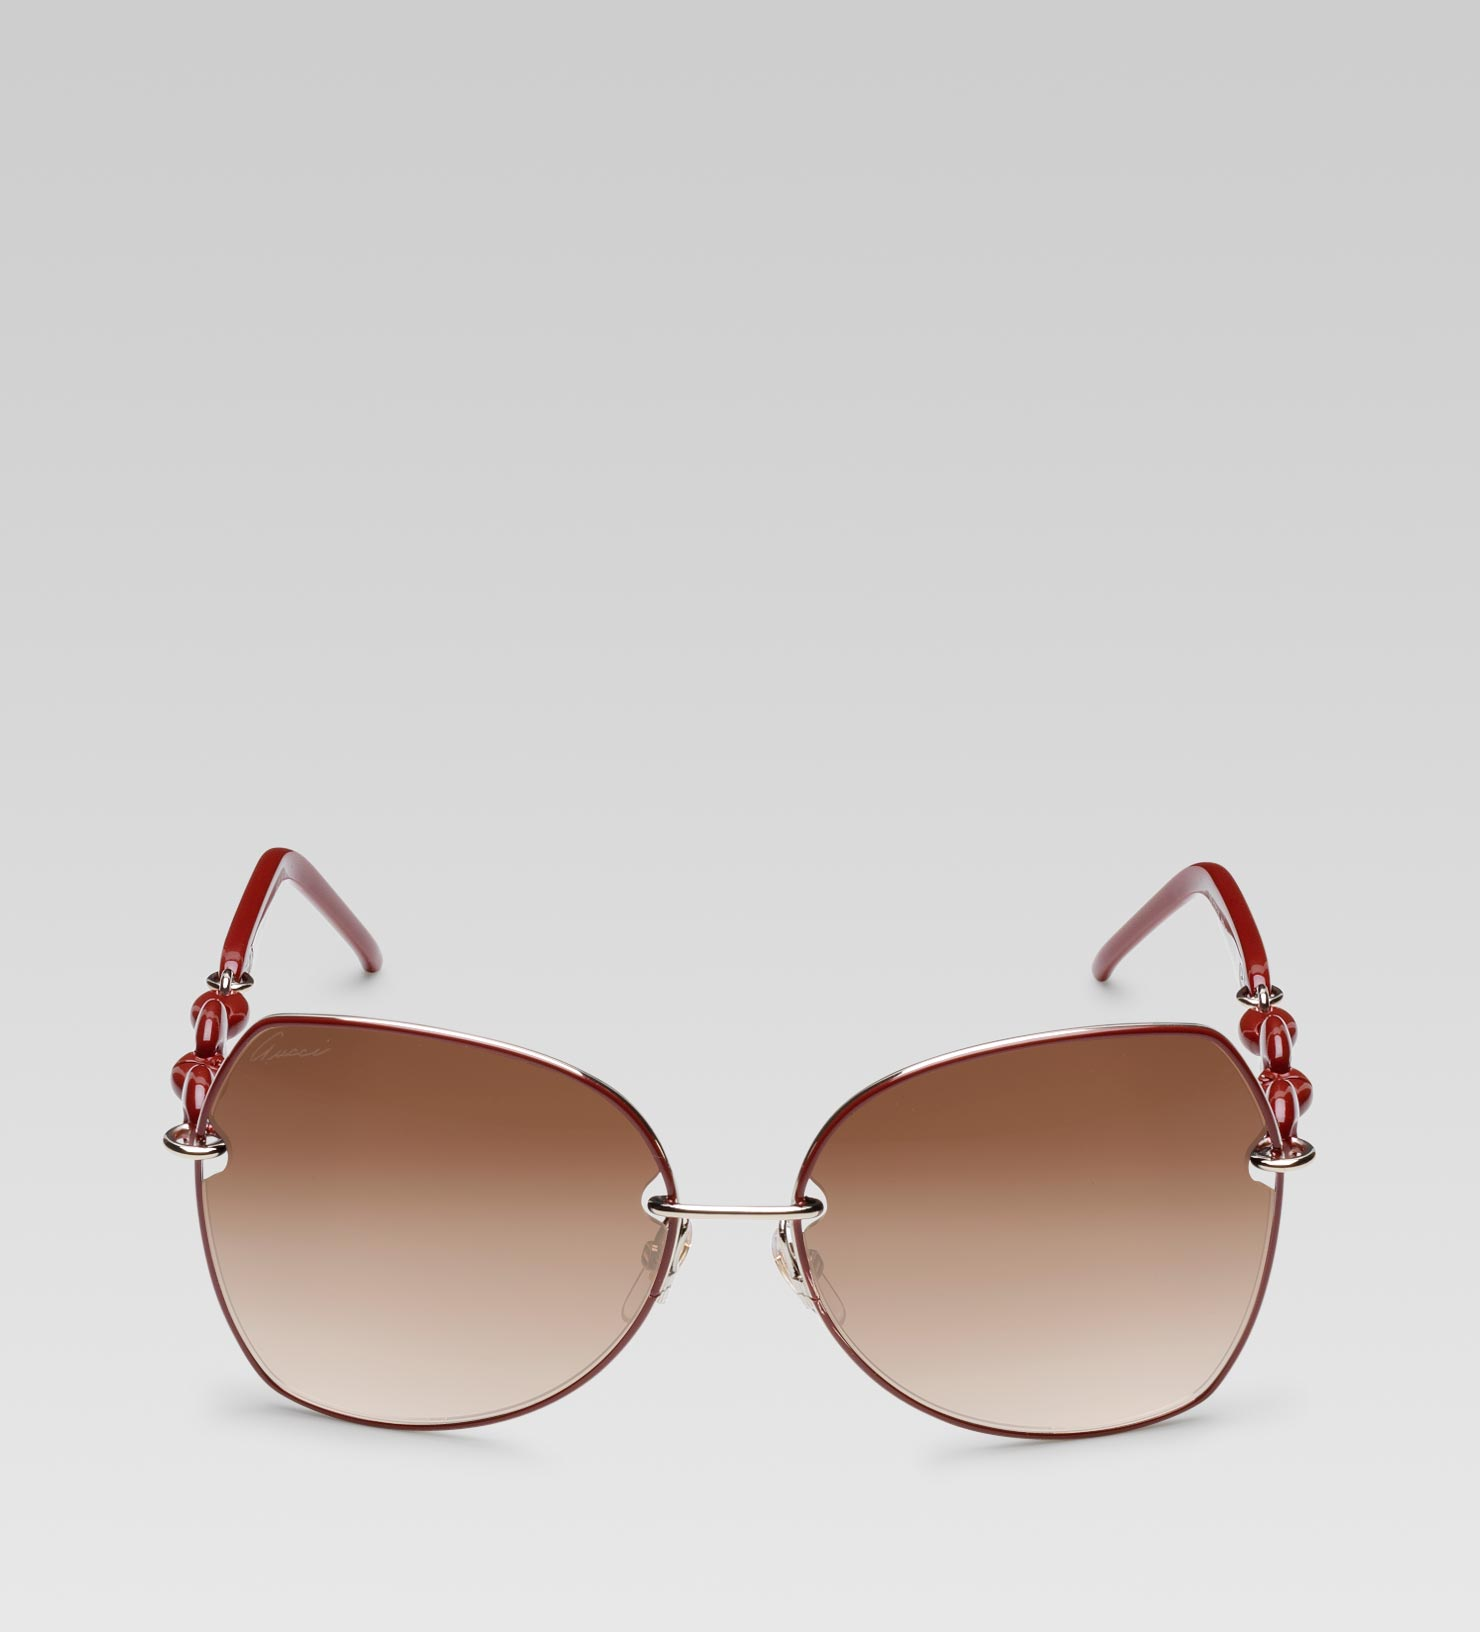 8cfe08382ee Gucci Medium Oval Frame Sunglasses with Plastic Marina Chain Temples ...